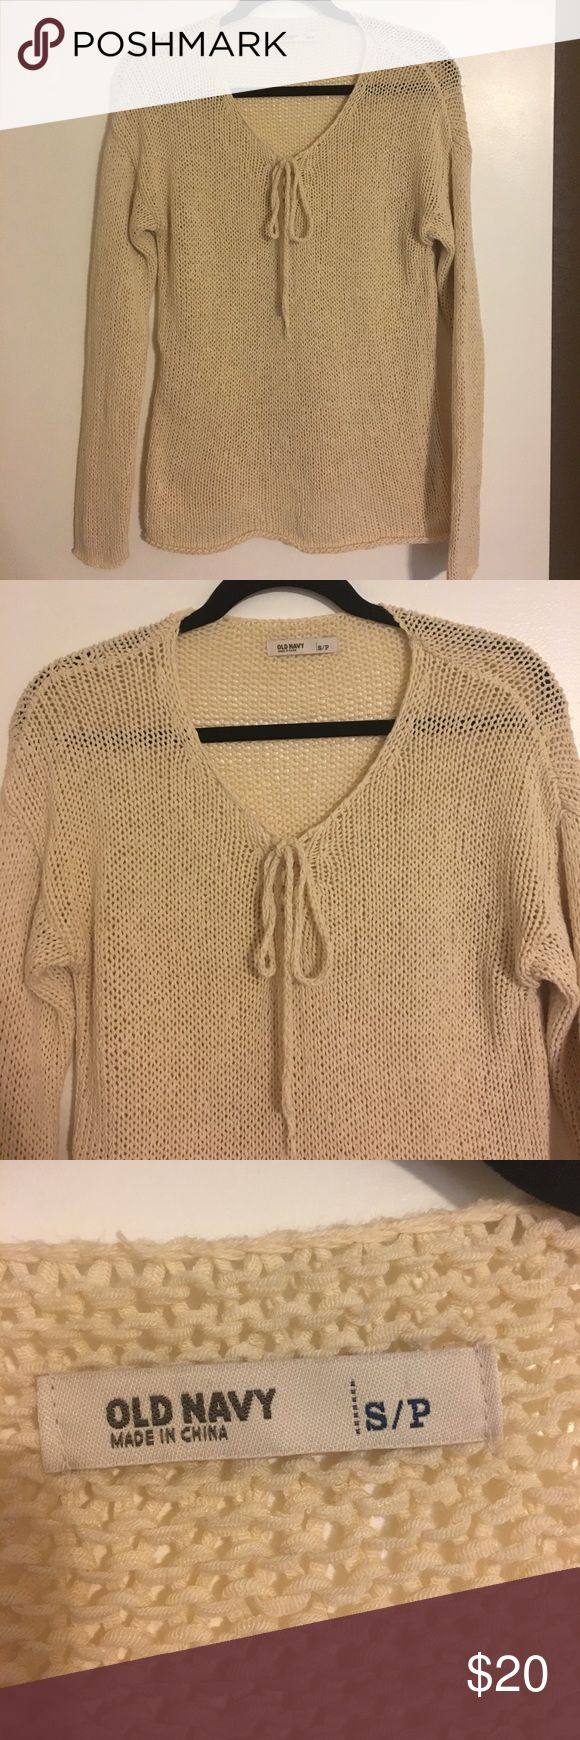 Old Navy Knit tie front Beige sweater small Old Navy Knit tie front Beige sweater small - great basic to have in your life! Old Navy Sweaters